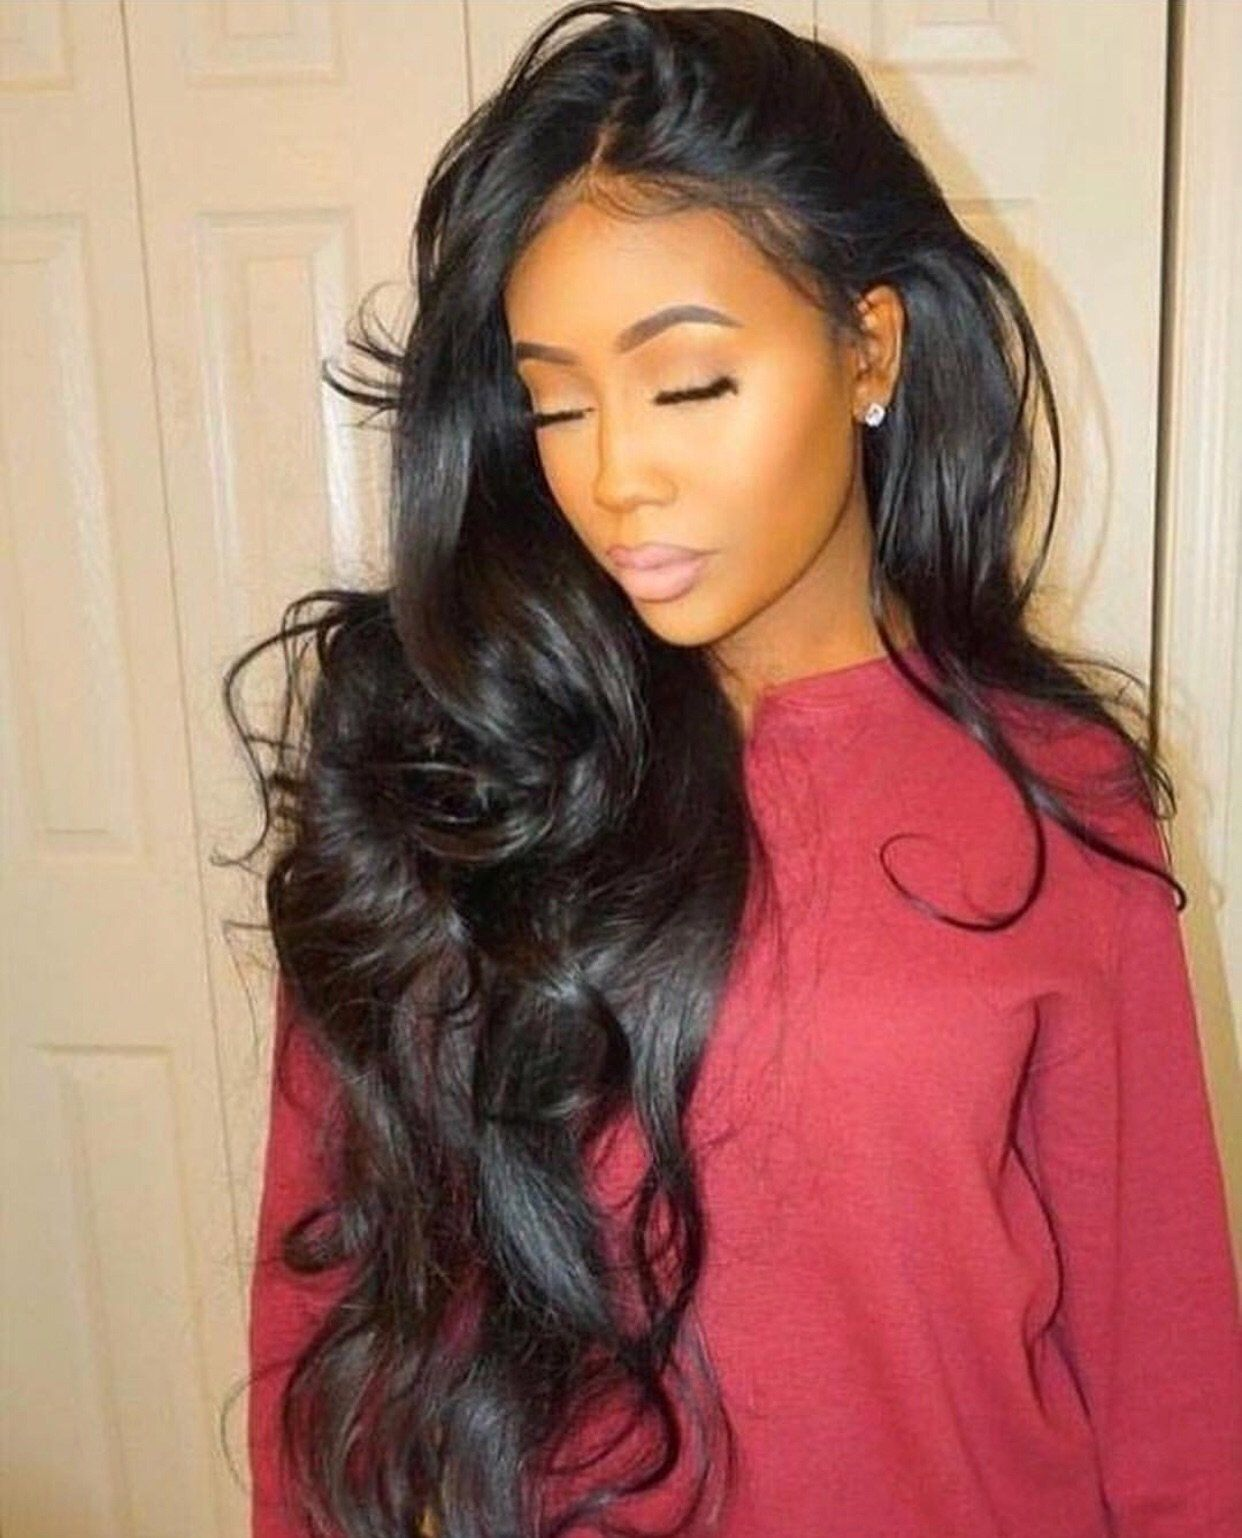 100% brazilian virgin hair lace front wig body wave with